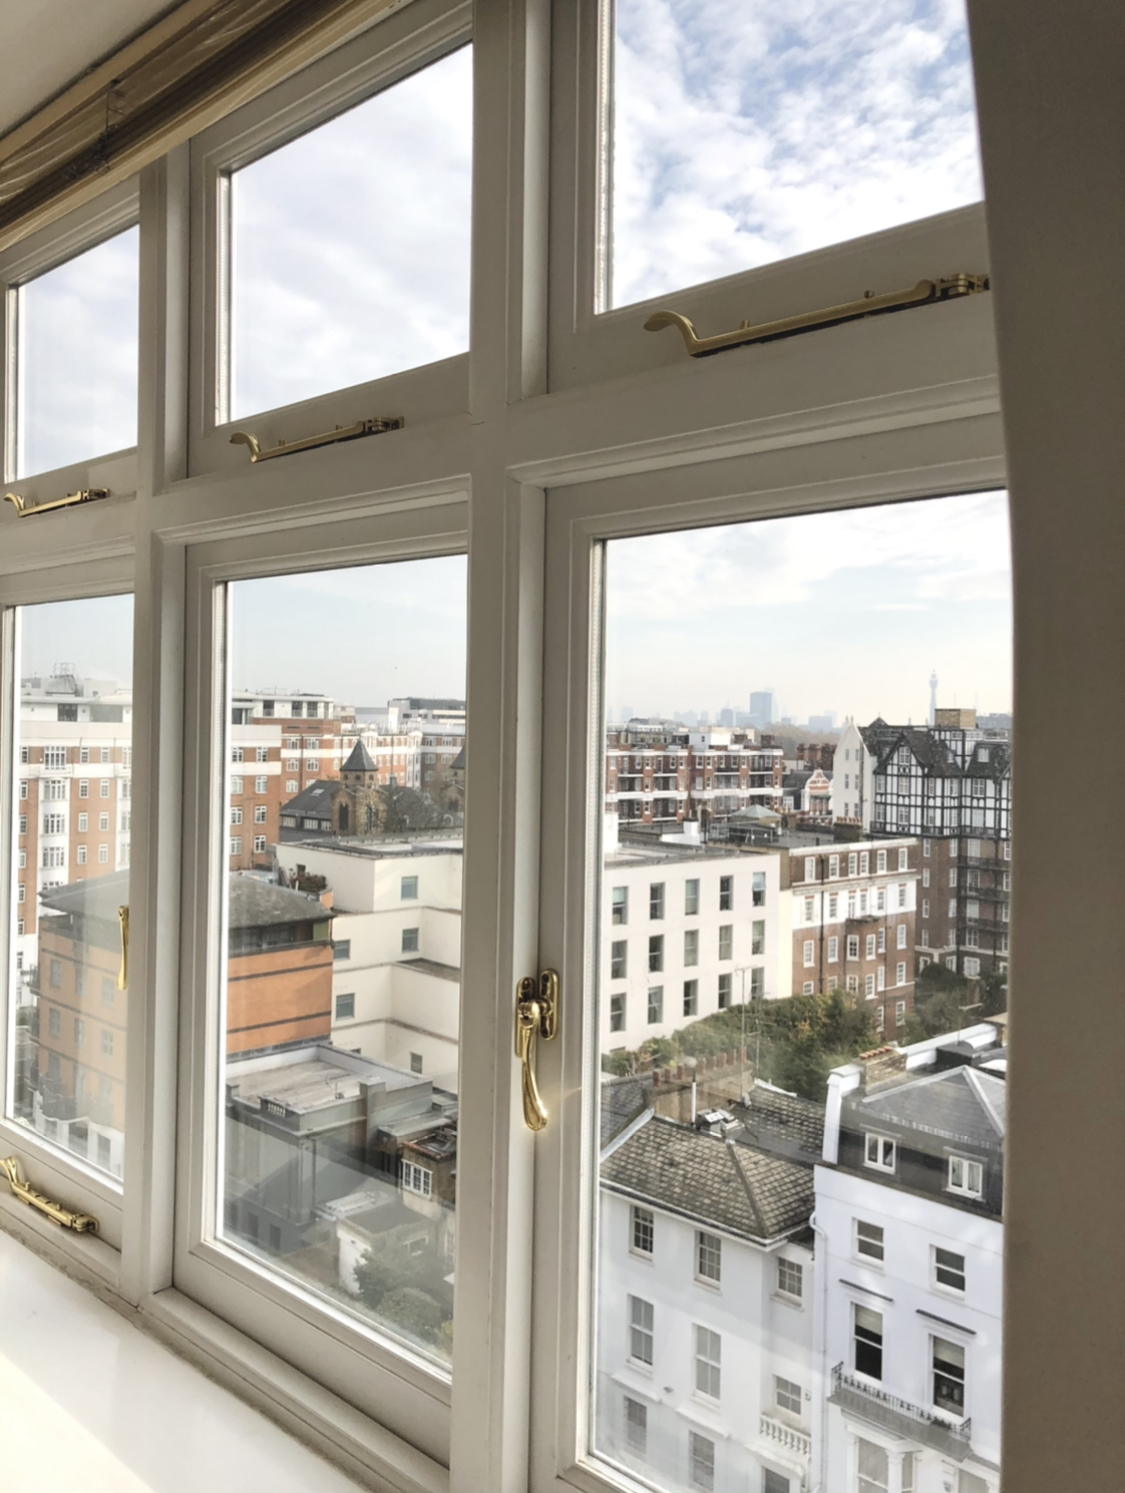 Lovely Studio Flat With Amazing Views Of London